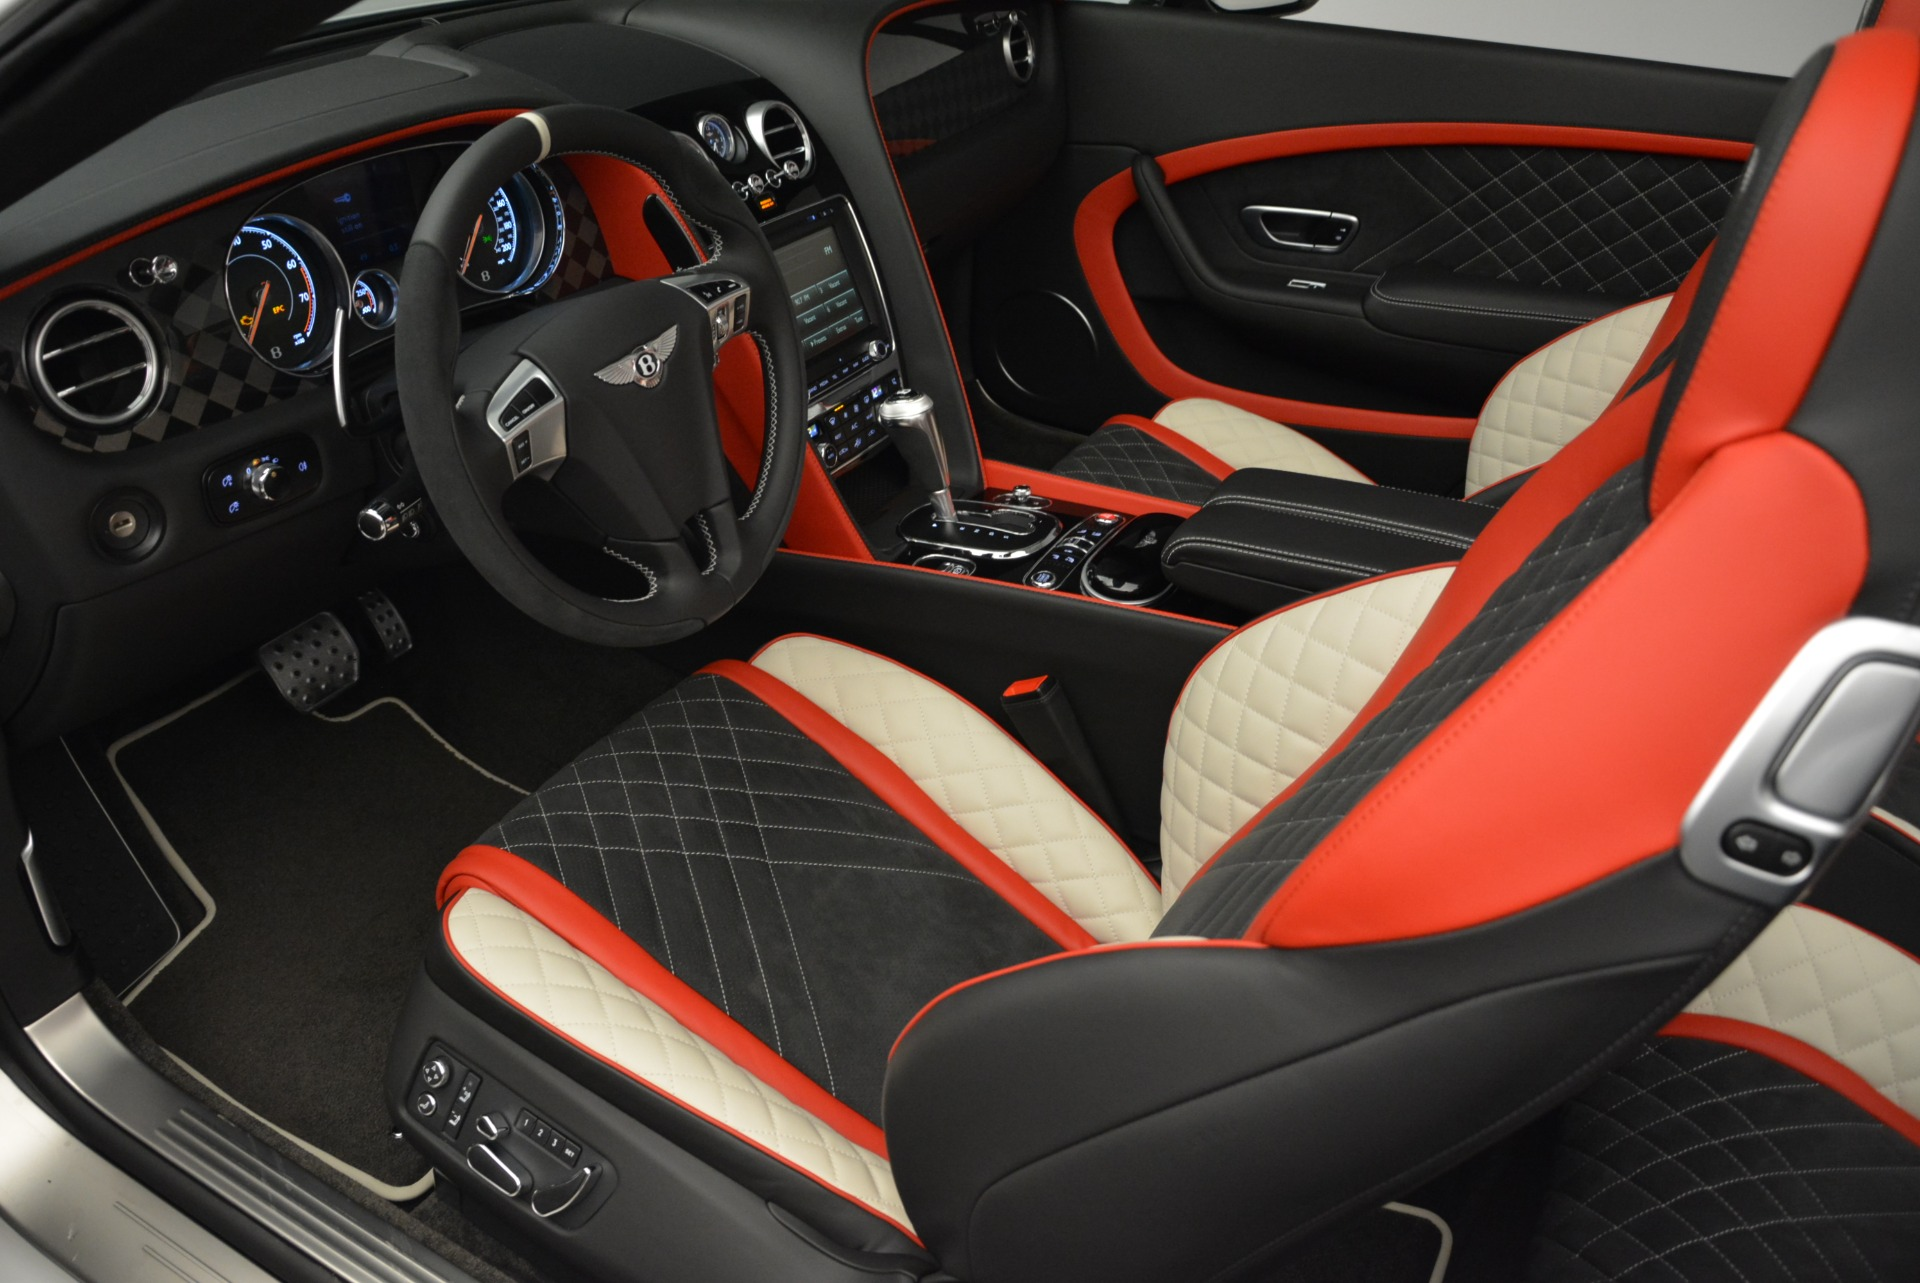 Used 2018 Bentley Continental GT Supersports Convertible For Sale In Greenwich, CT 1875_p26